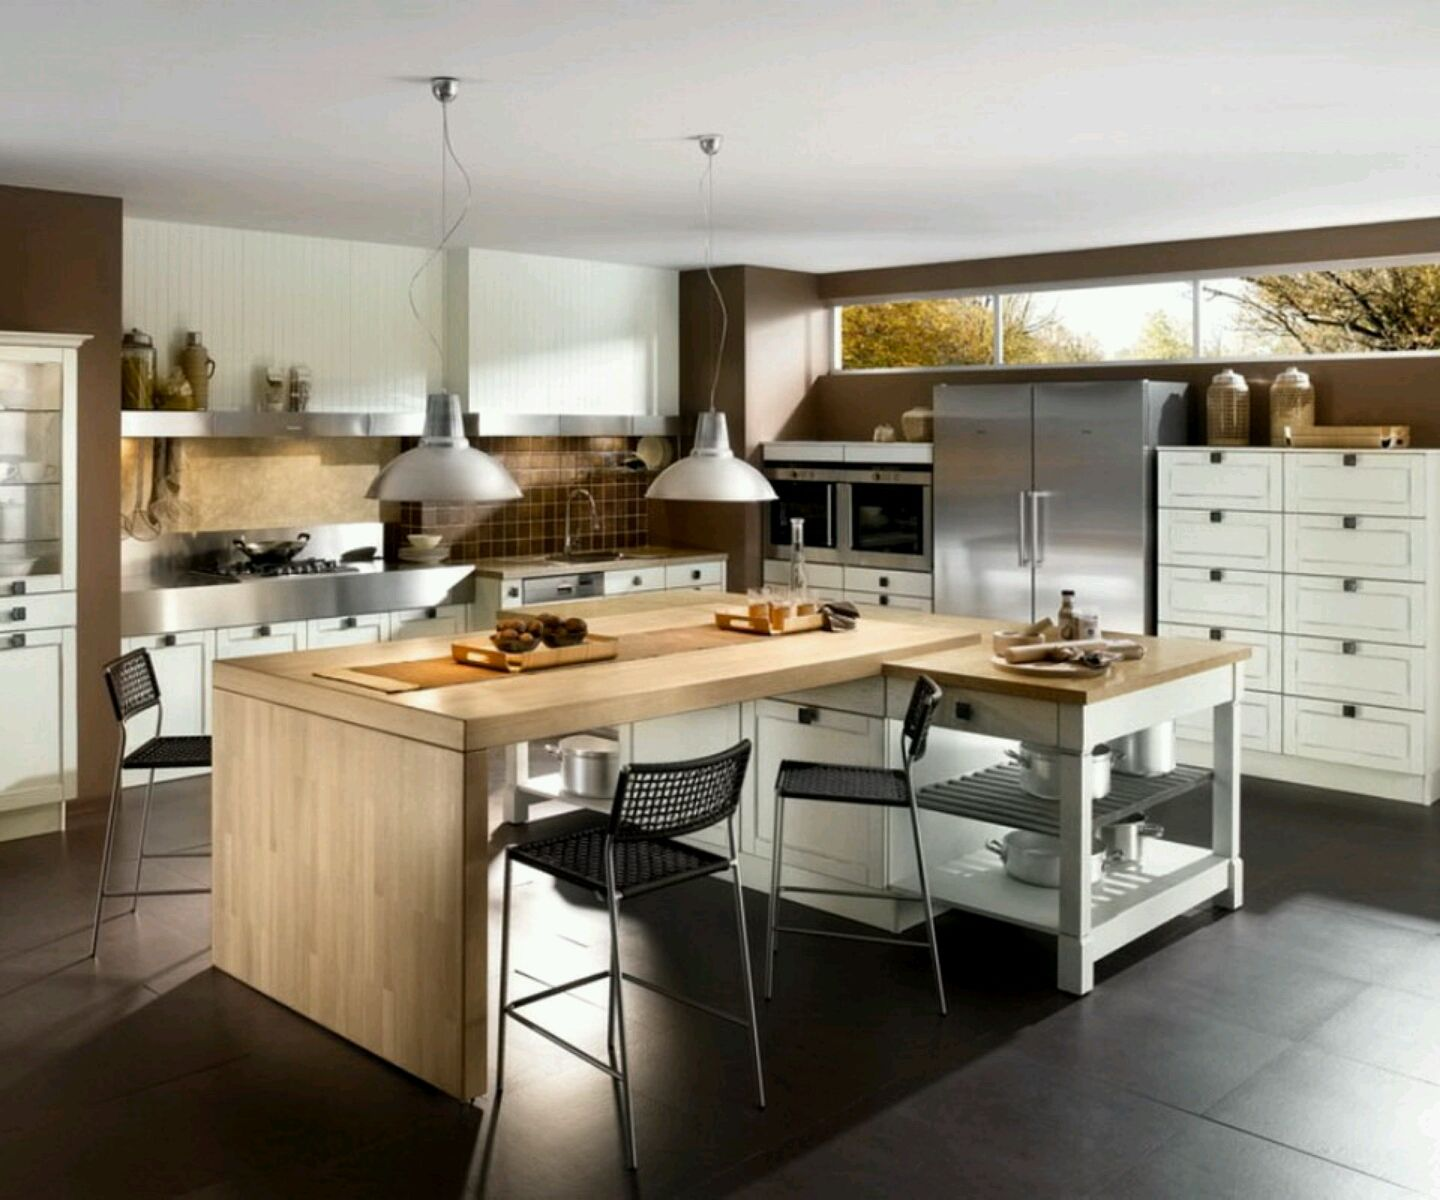 new home designs latest modern kitchen ideas images kitchens ign ...